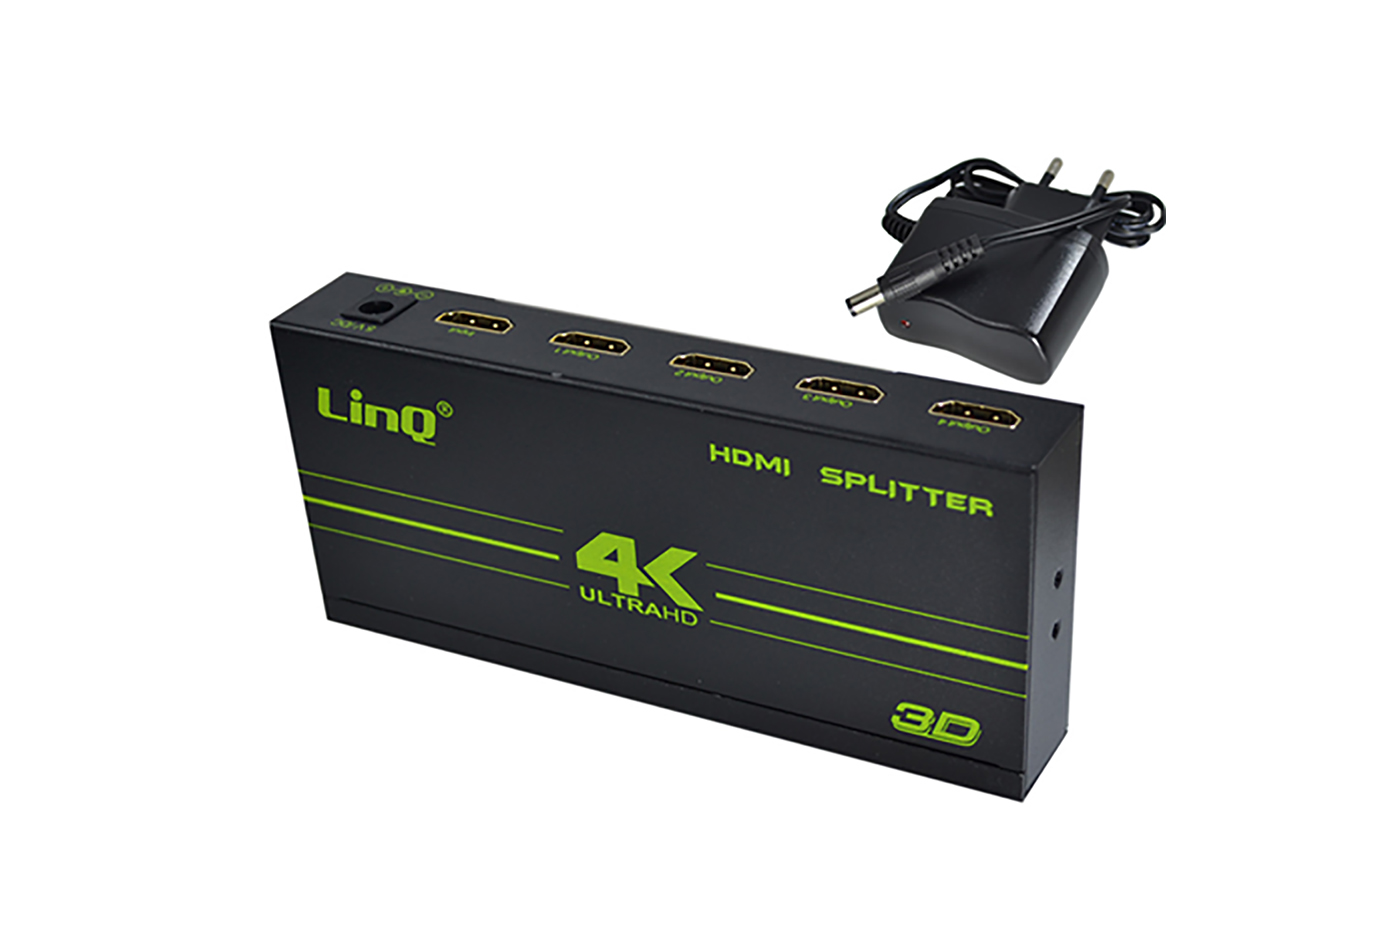 SWITCH HUB HDMI 4 PORTE SPLITTER AMPLIFICATORE 3D 1x4 LINQ VK-104W